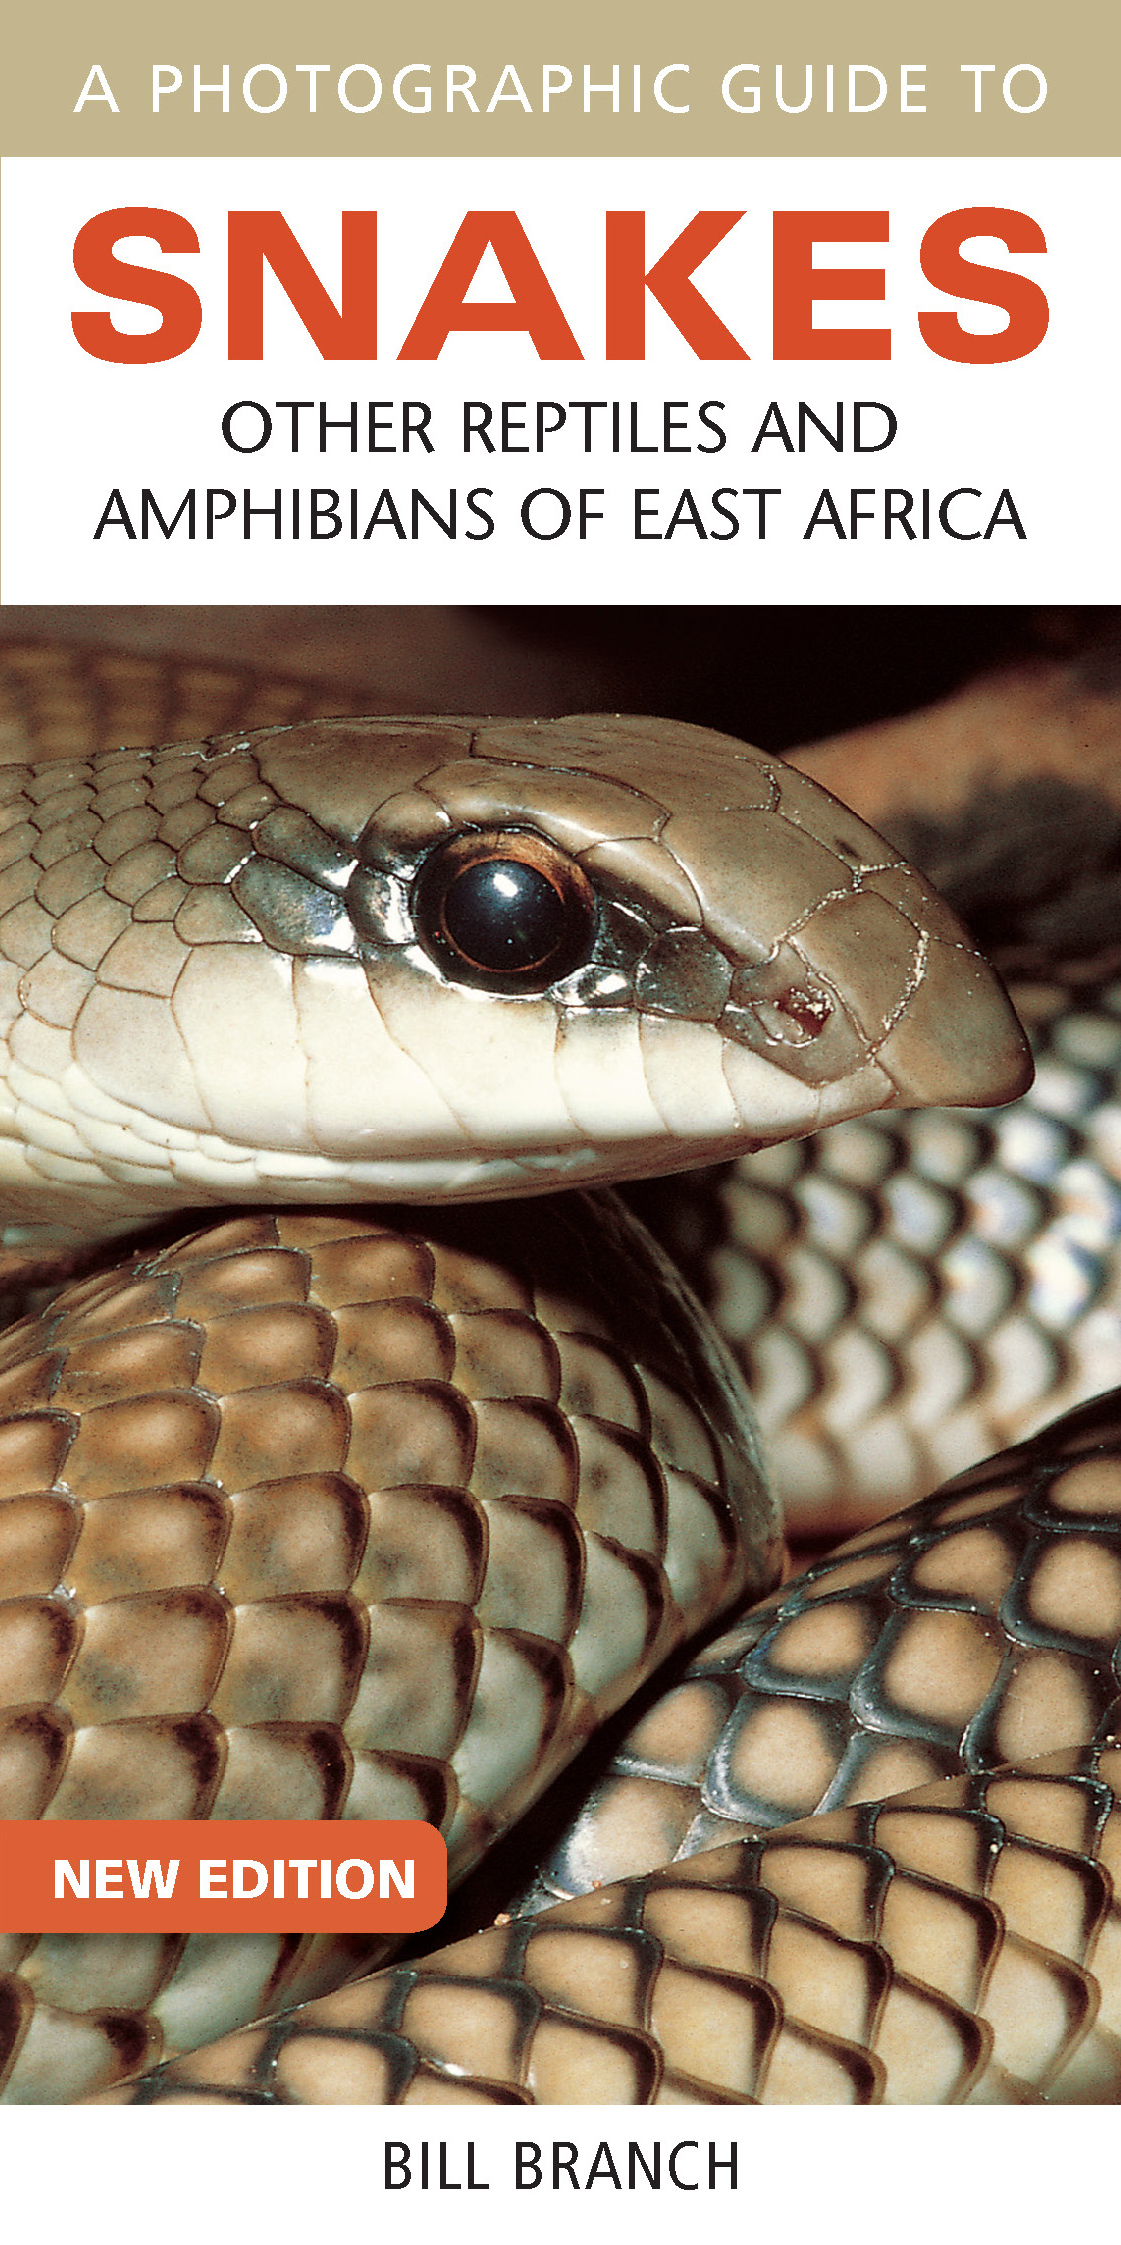 A Photographic Guide to Snakes and Other Reptiles And Amphibians of East Africa